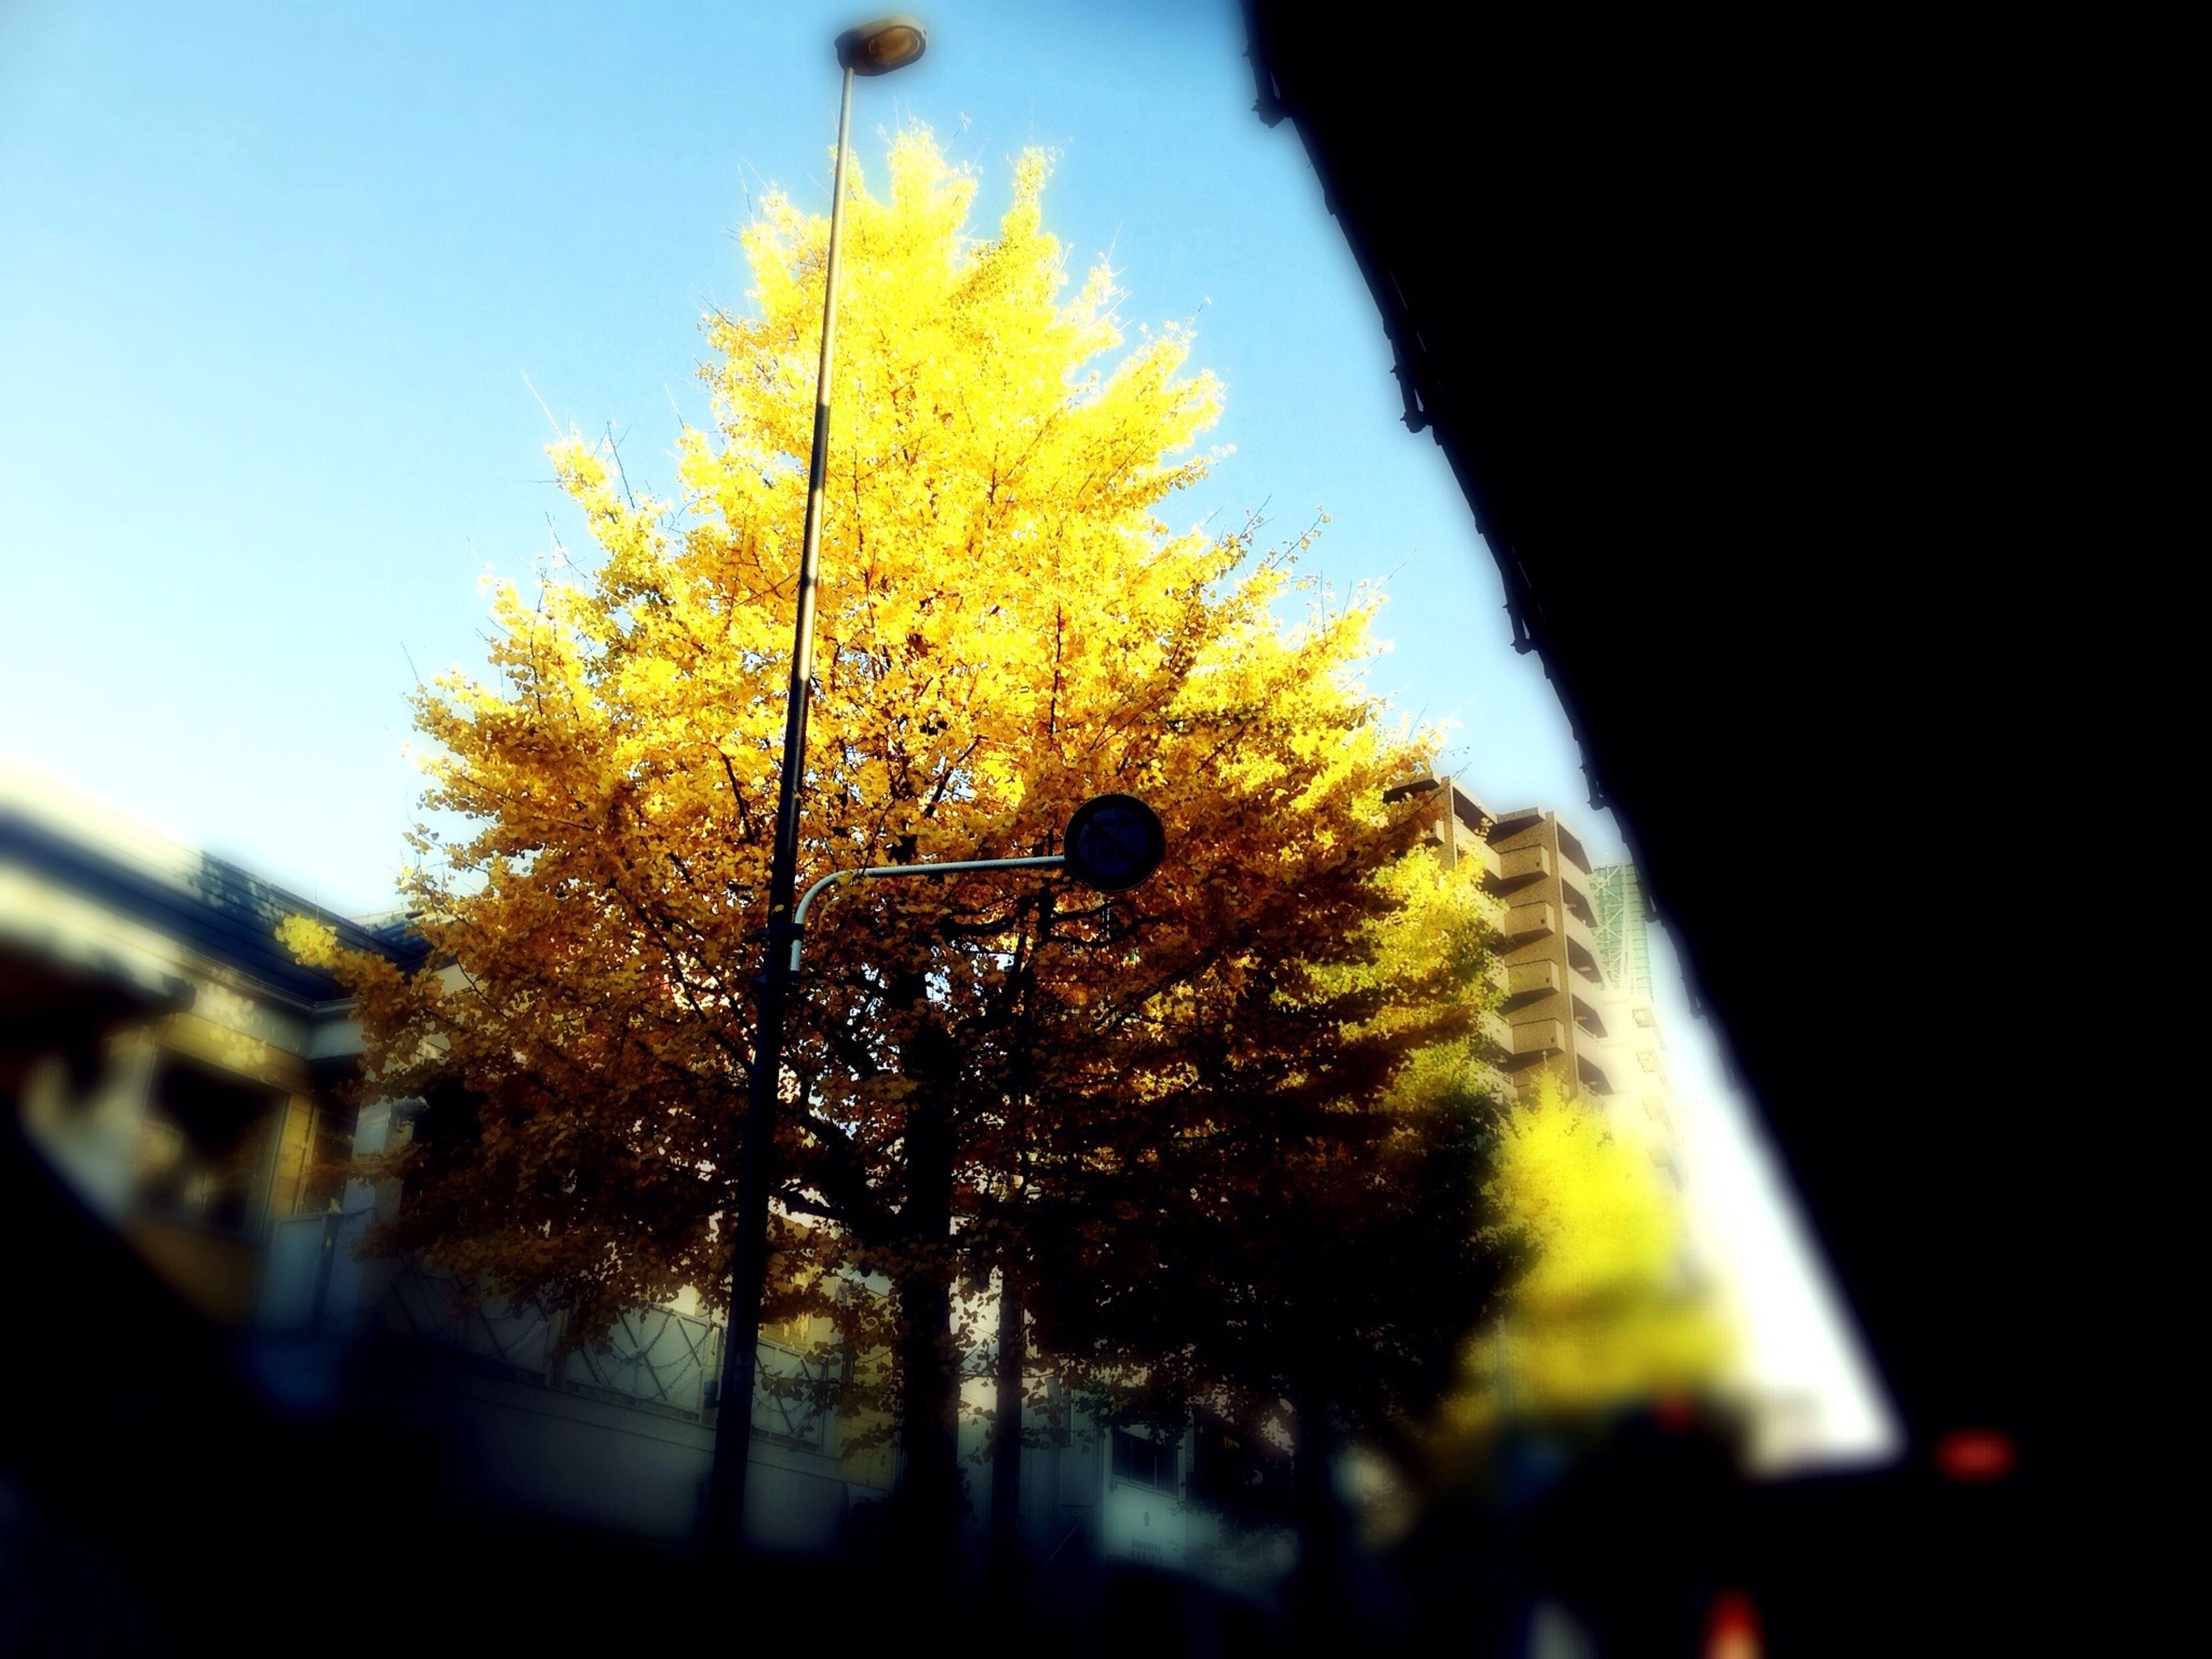 tree, yellow, low angle view, clear sky, branch, autumn, growth, nature, change, beauty in nature, season, sky, leaf, selective focus, close-up, no people, sunlight, outdoors, tranquility, focus on foreground